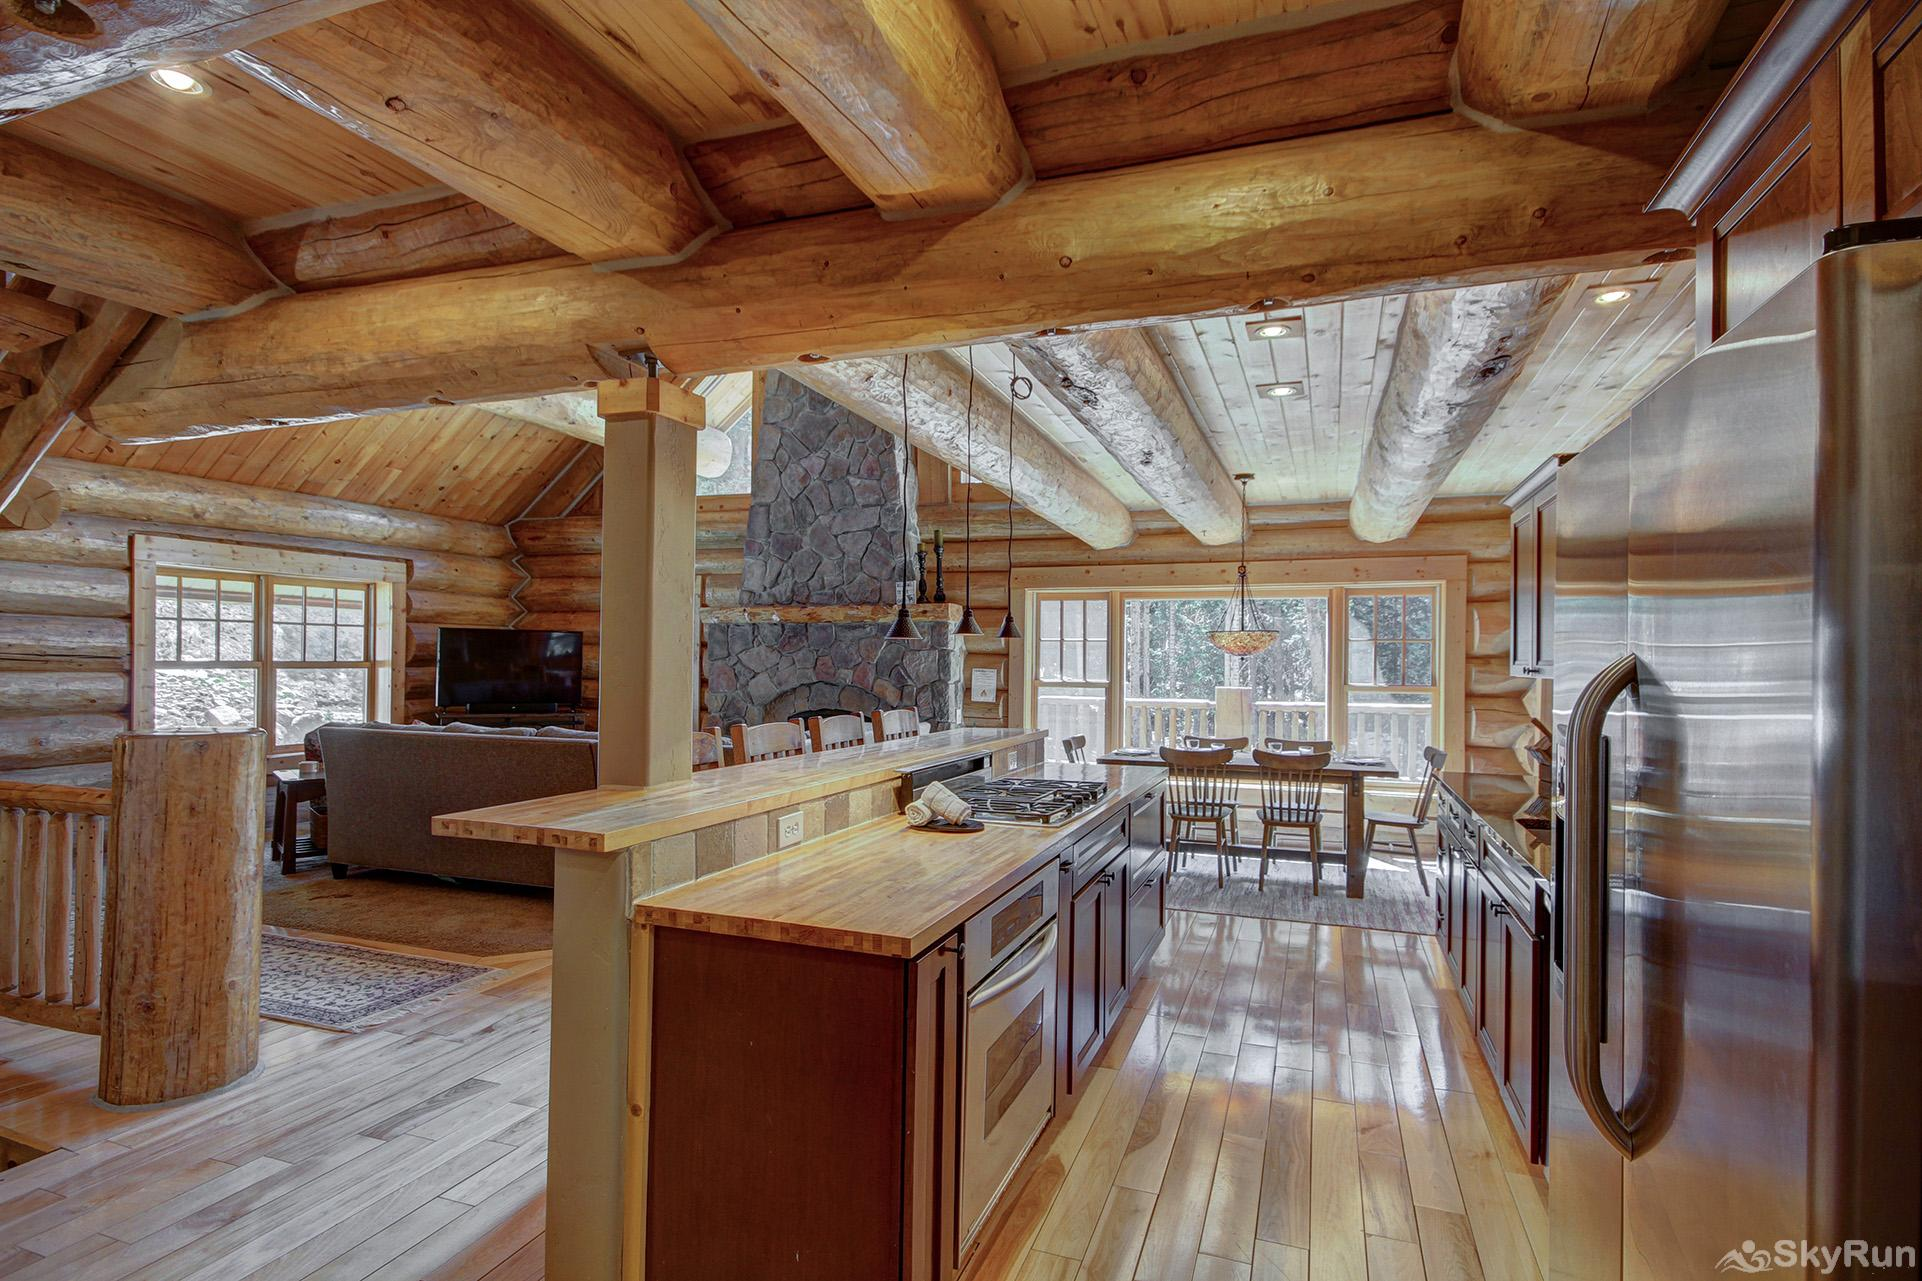 Timber Ridge Lodge Large kitchen with modern stainless steel appliances